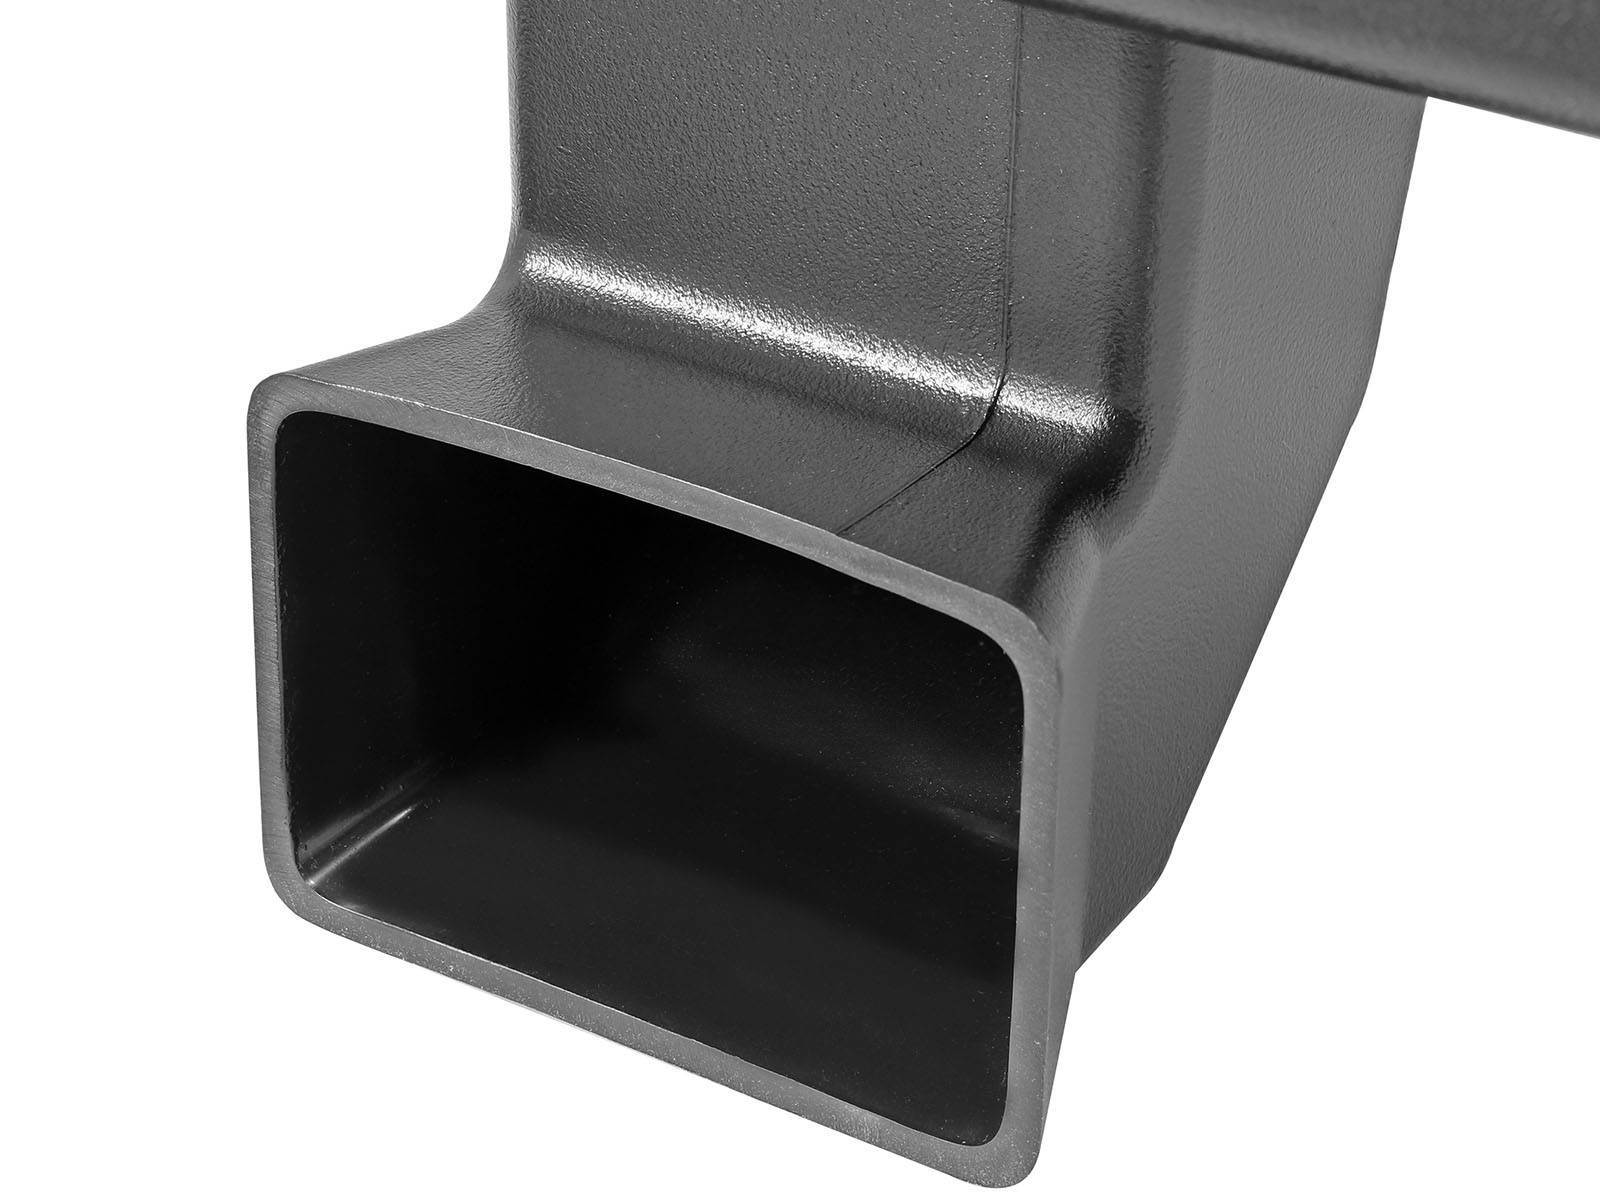 51-80782 - aFE Pro-Dry-S Type Si Performance Cold Air Intake System for 2001-2004 GMC/Chevy Duramax LB7 diesels